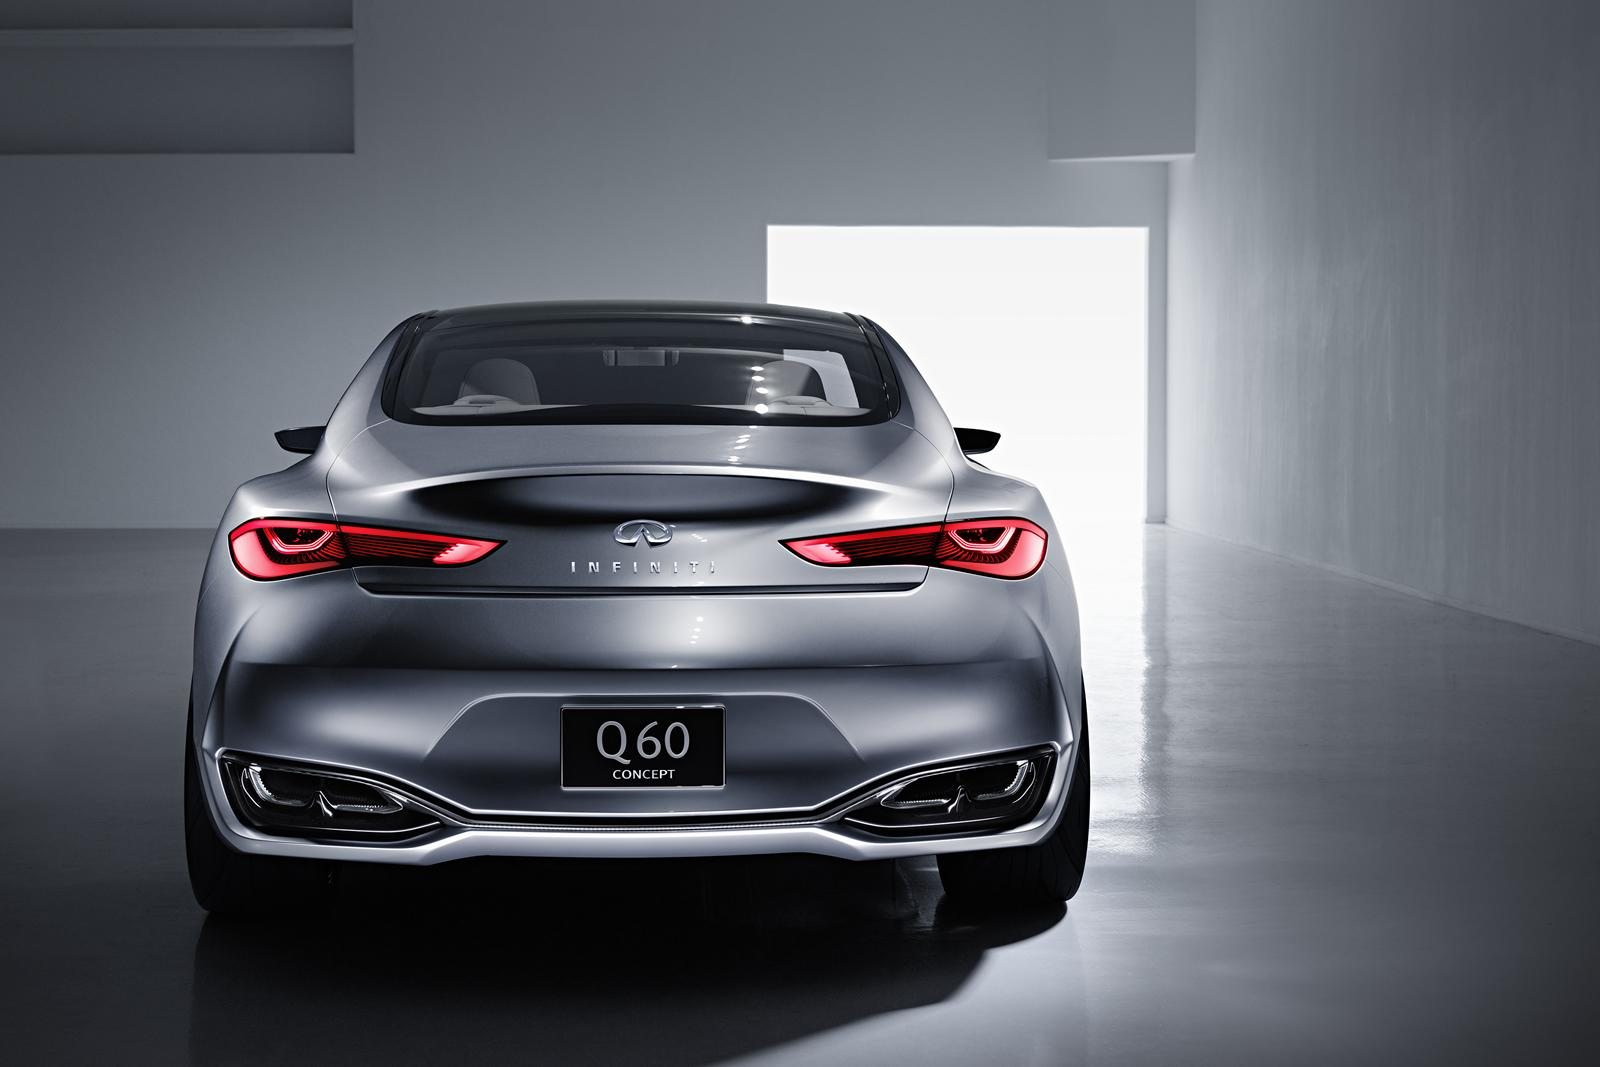 Infiniti Q60 Concept Unveiled with 3-liter V6 Twin-Turbo ...